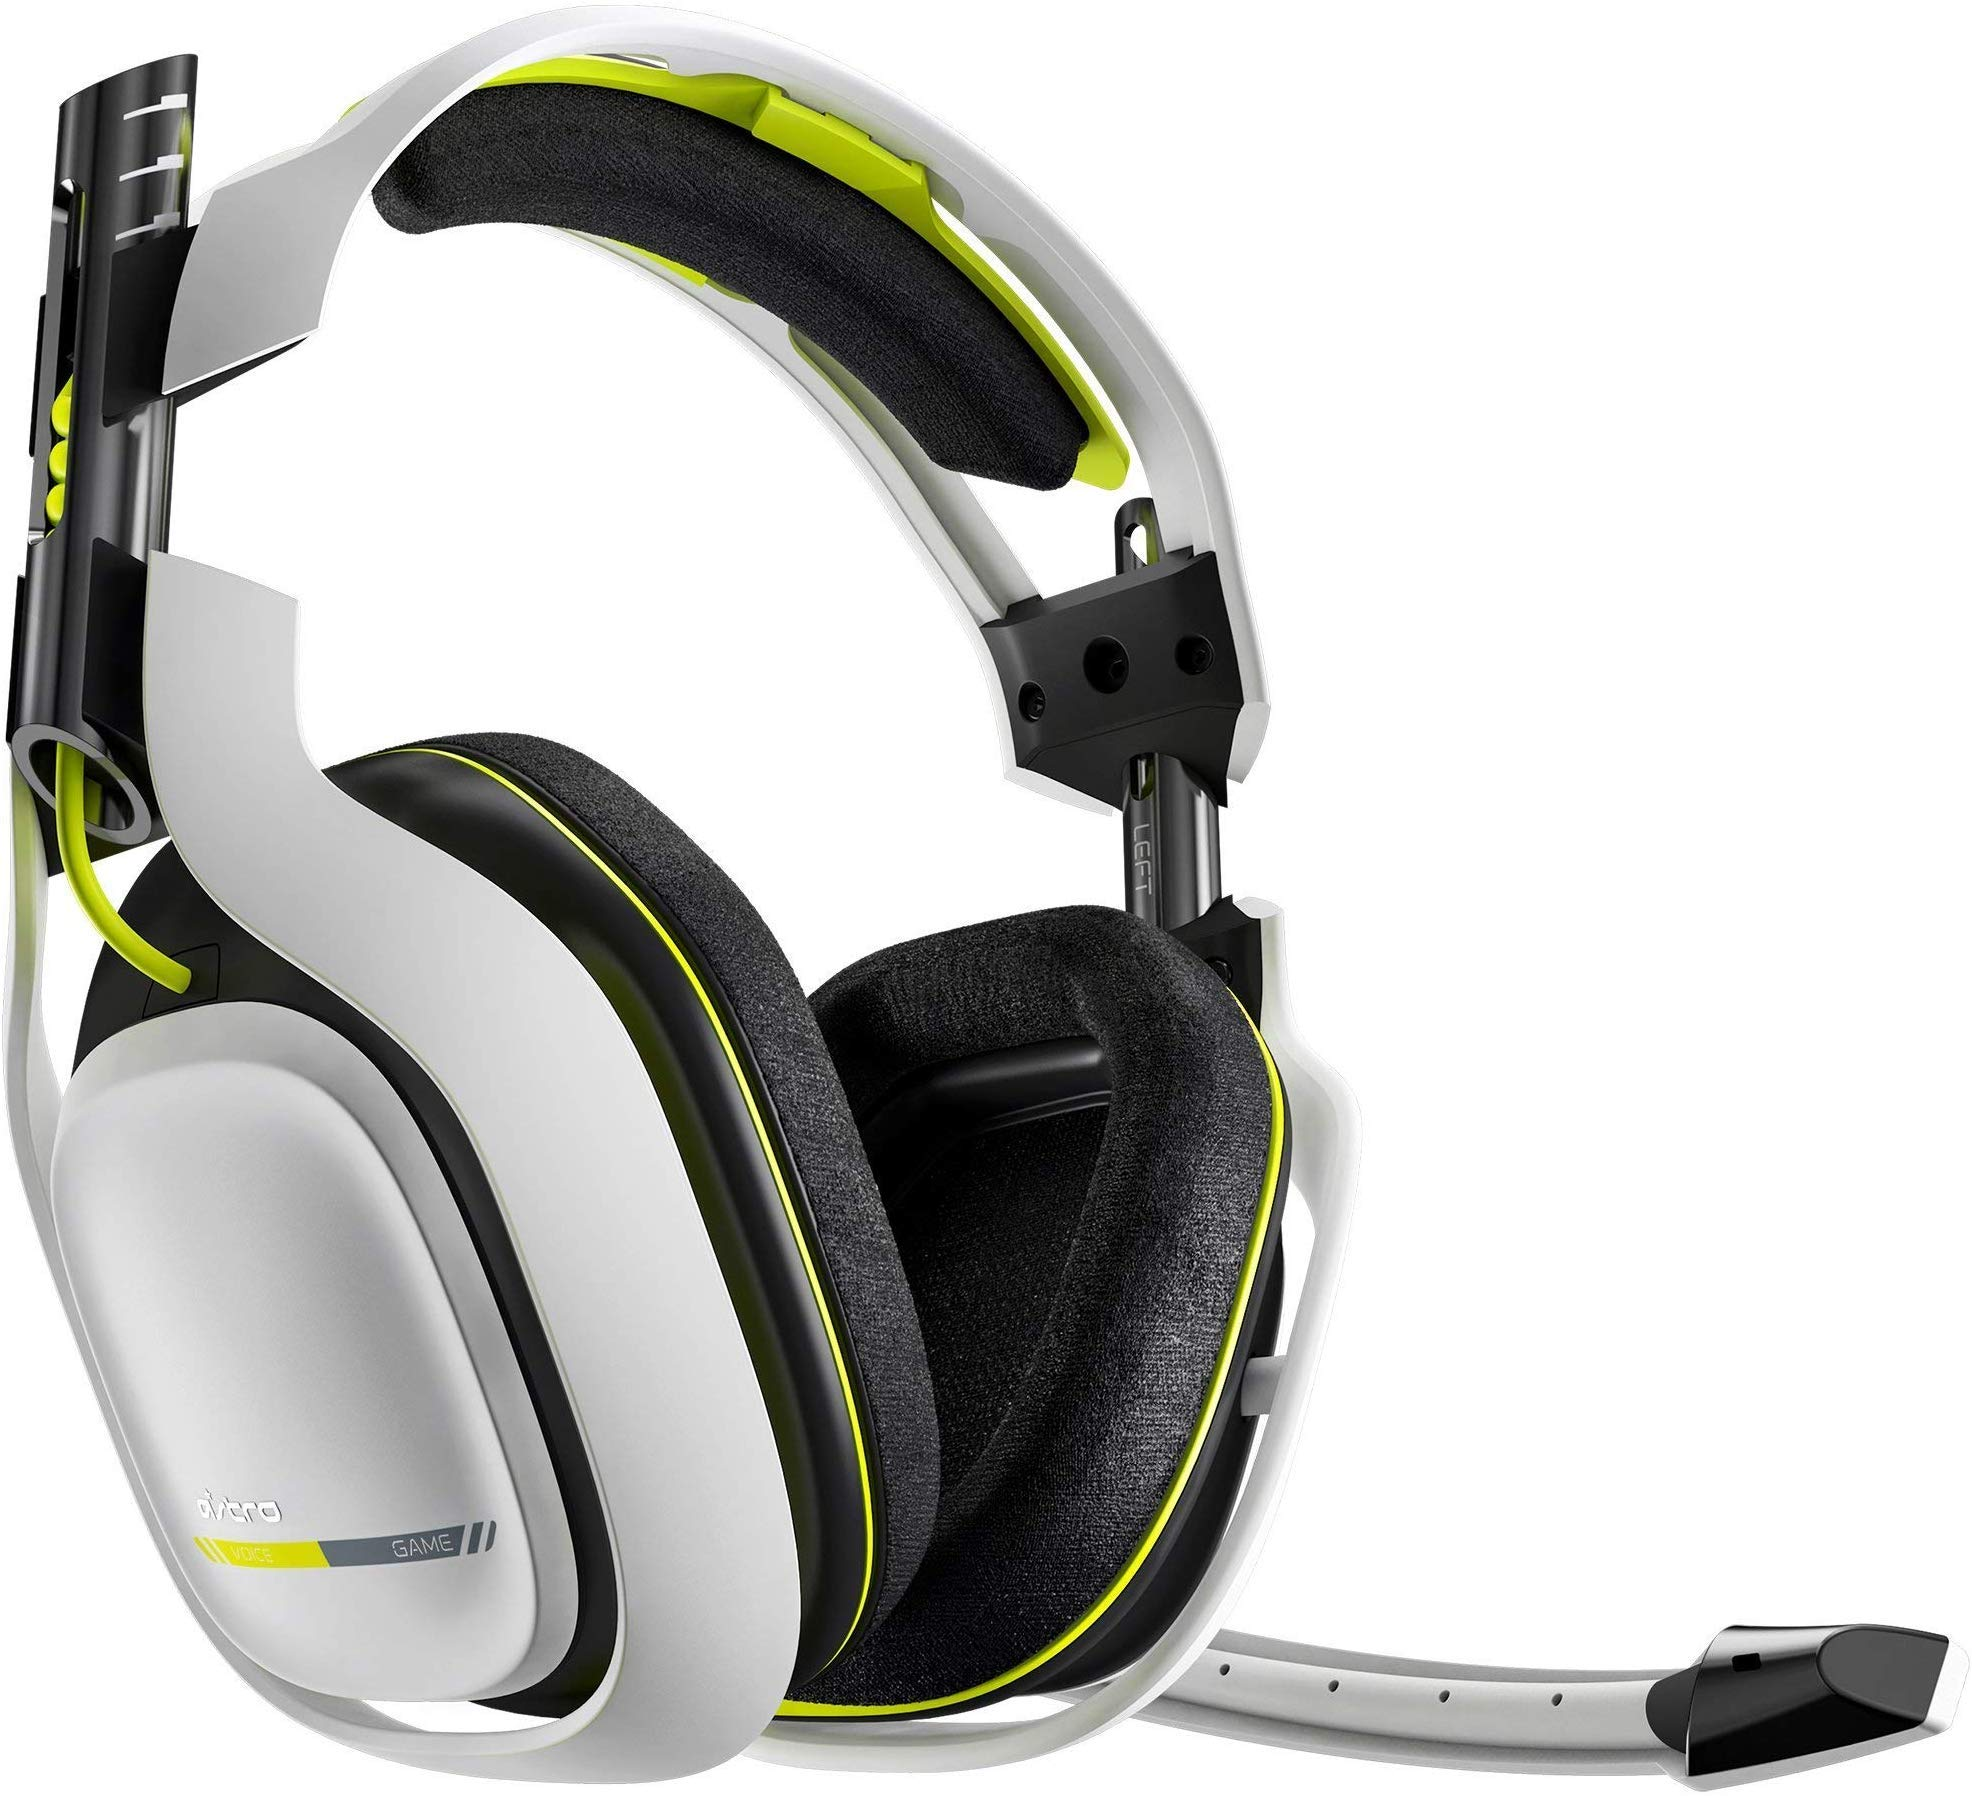 ASTRO Gaming A50 (headset only) Gaming Headset Xbox One / PC / MAC - White- Replacement Headphone Only with no Cables no base (New Open Box)